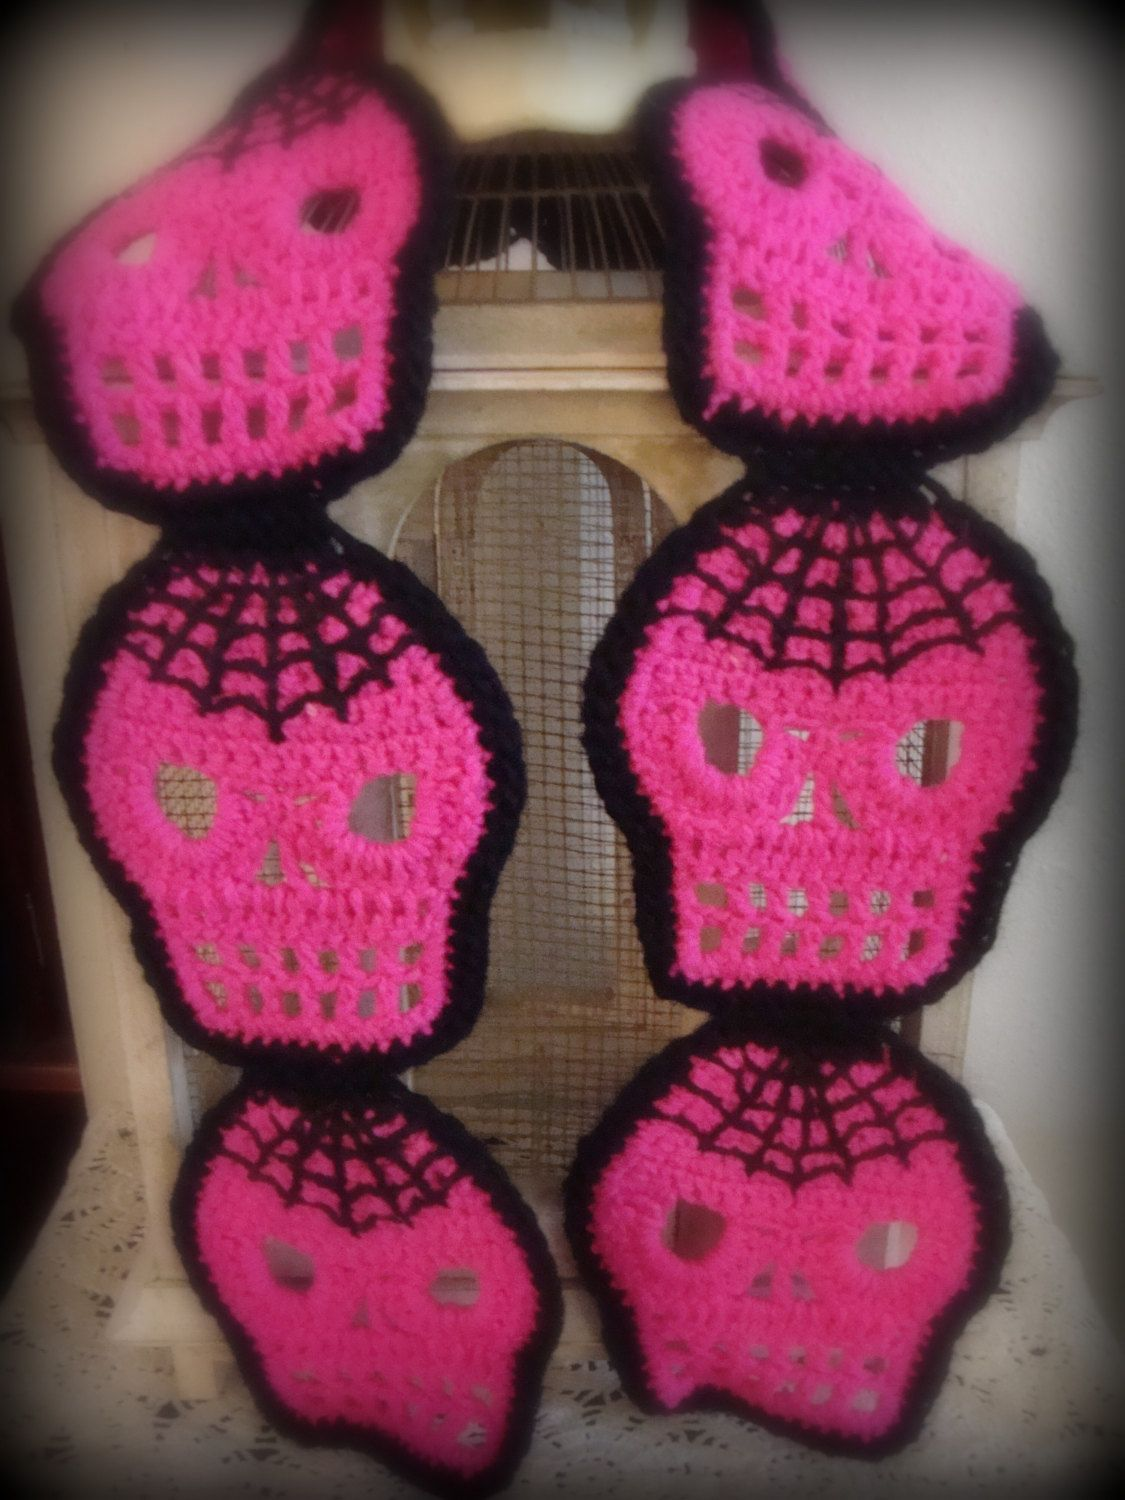 Hot Pink Crochet Skull Scarf with Embroidered Spider Webs   Crochet ...